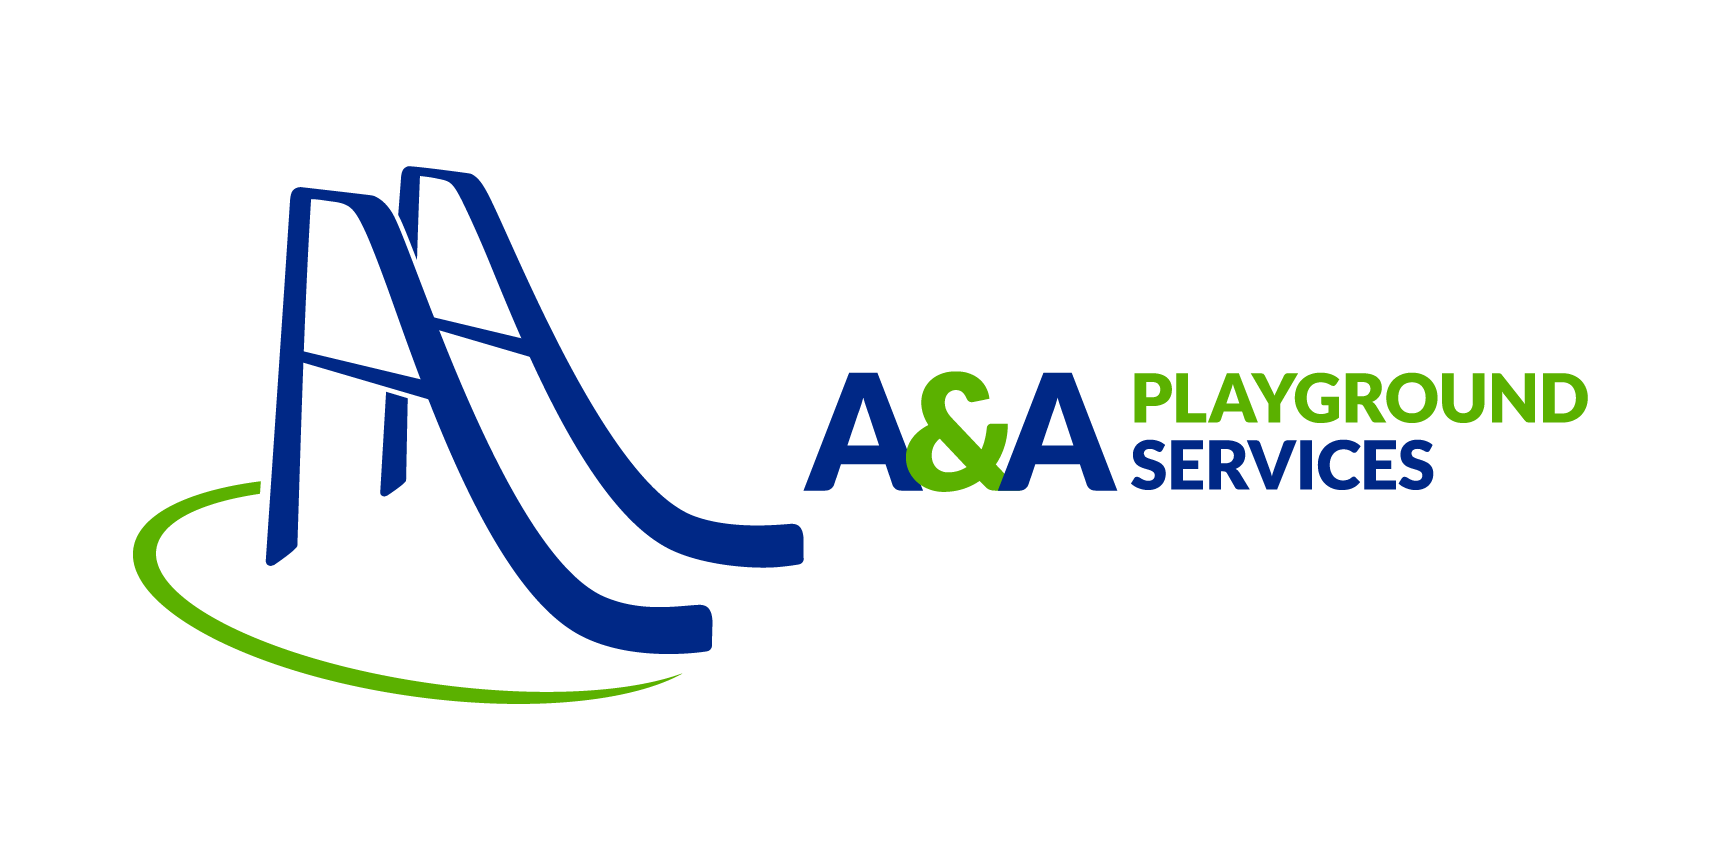 A & A Playground Services